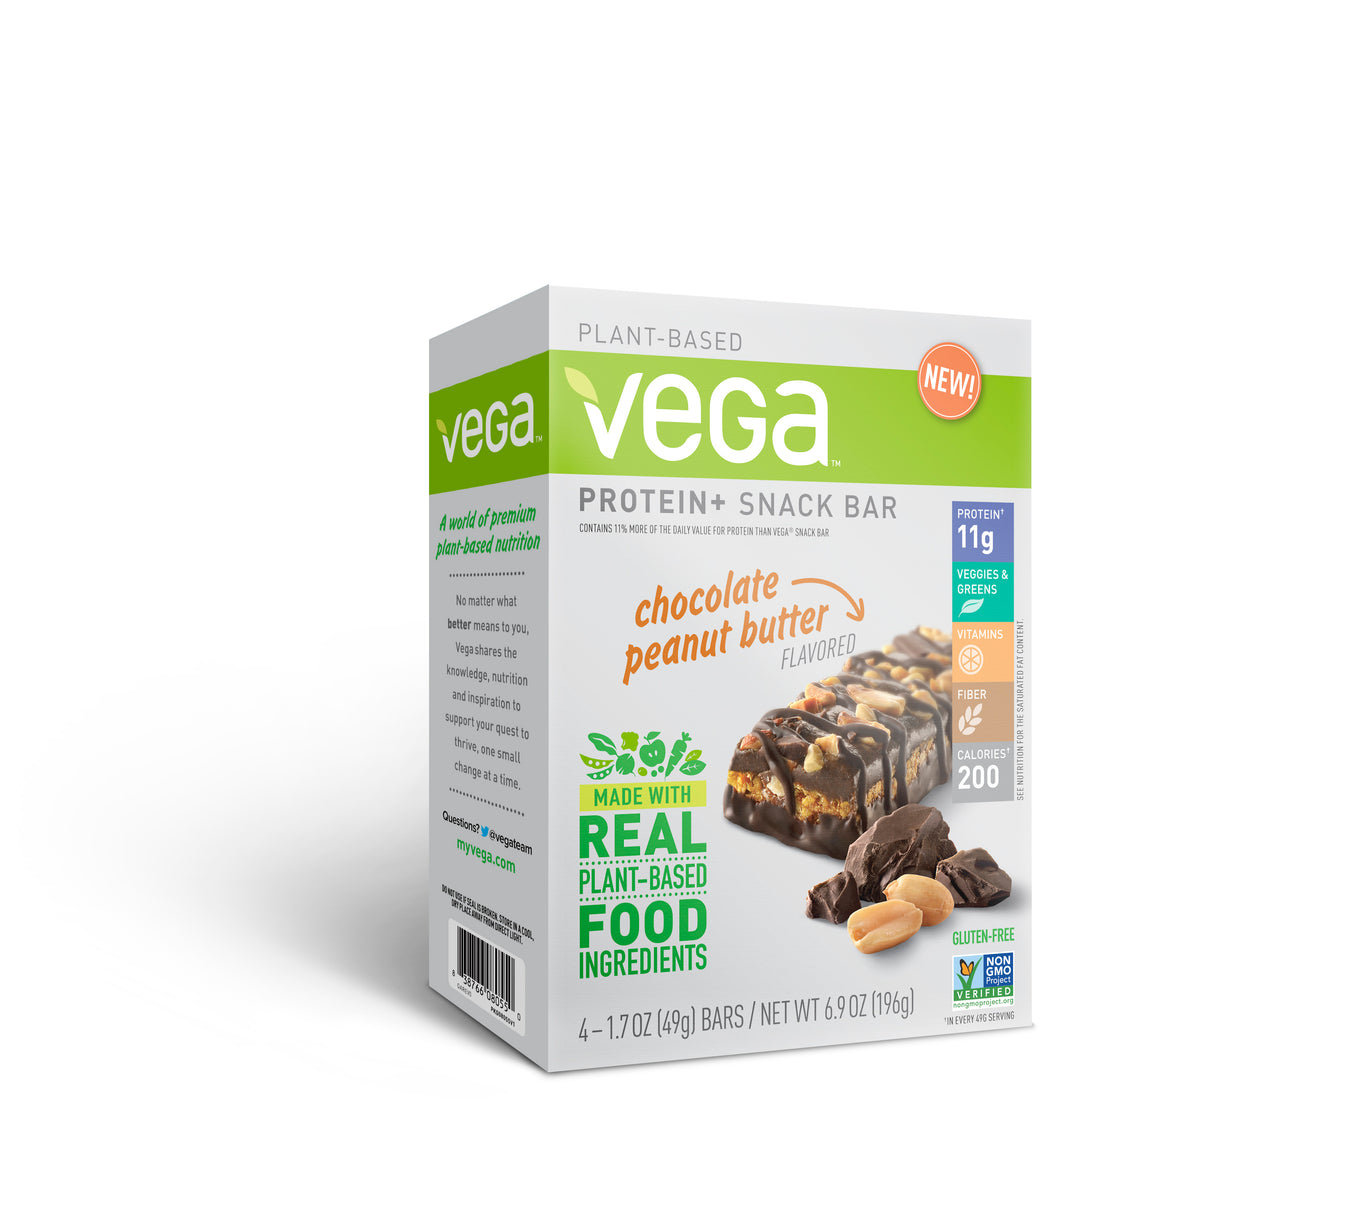 New Premium Plant-based Nutrition Bar for Nutrition On-the-go: Vega® Protein+ Snack Bar